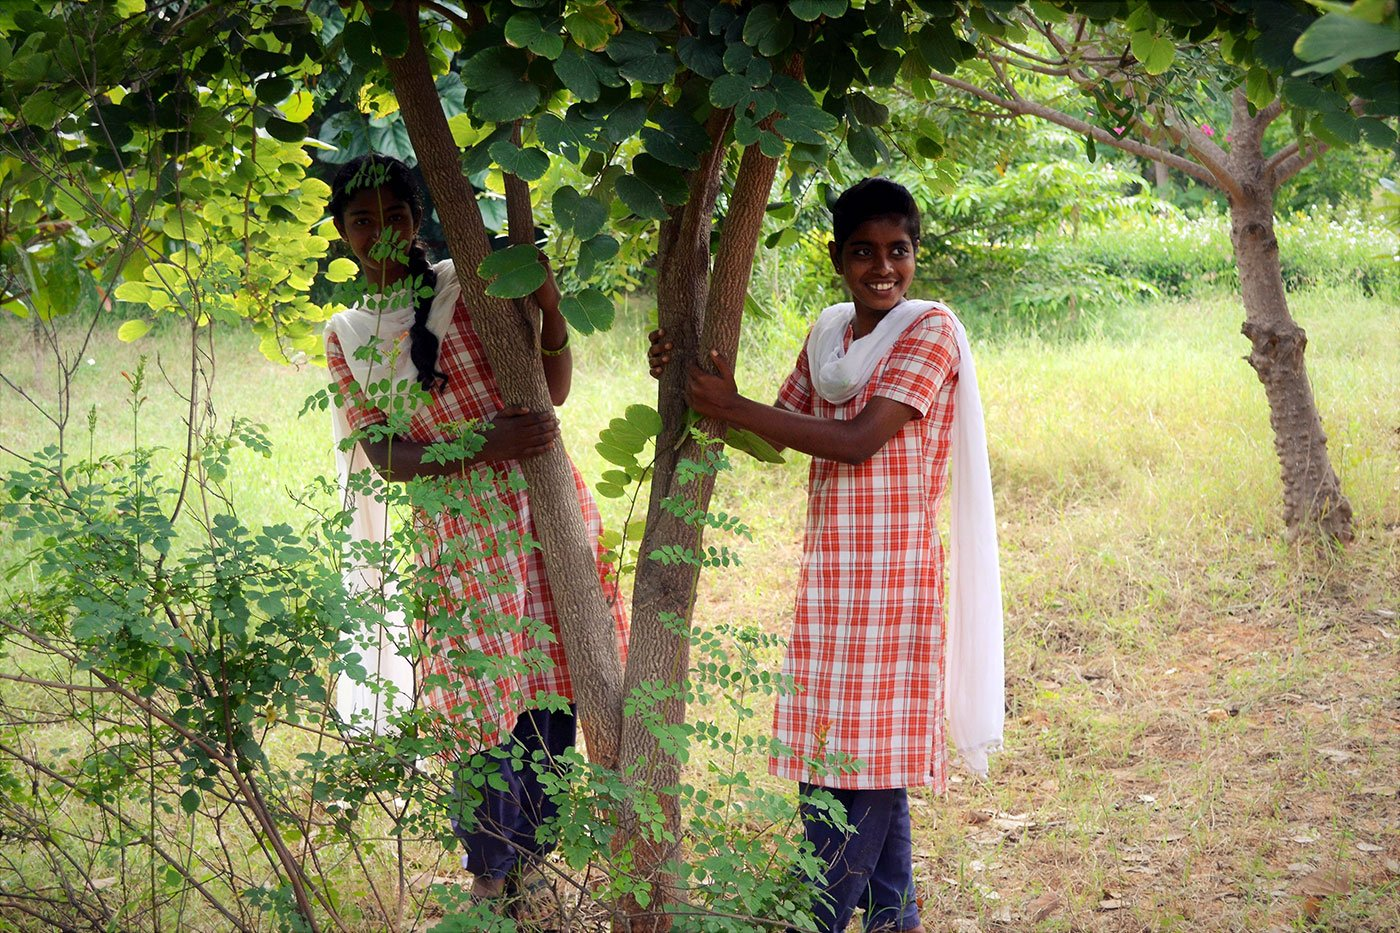 Two girls standing under a tree